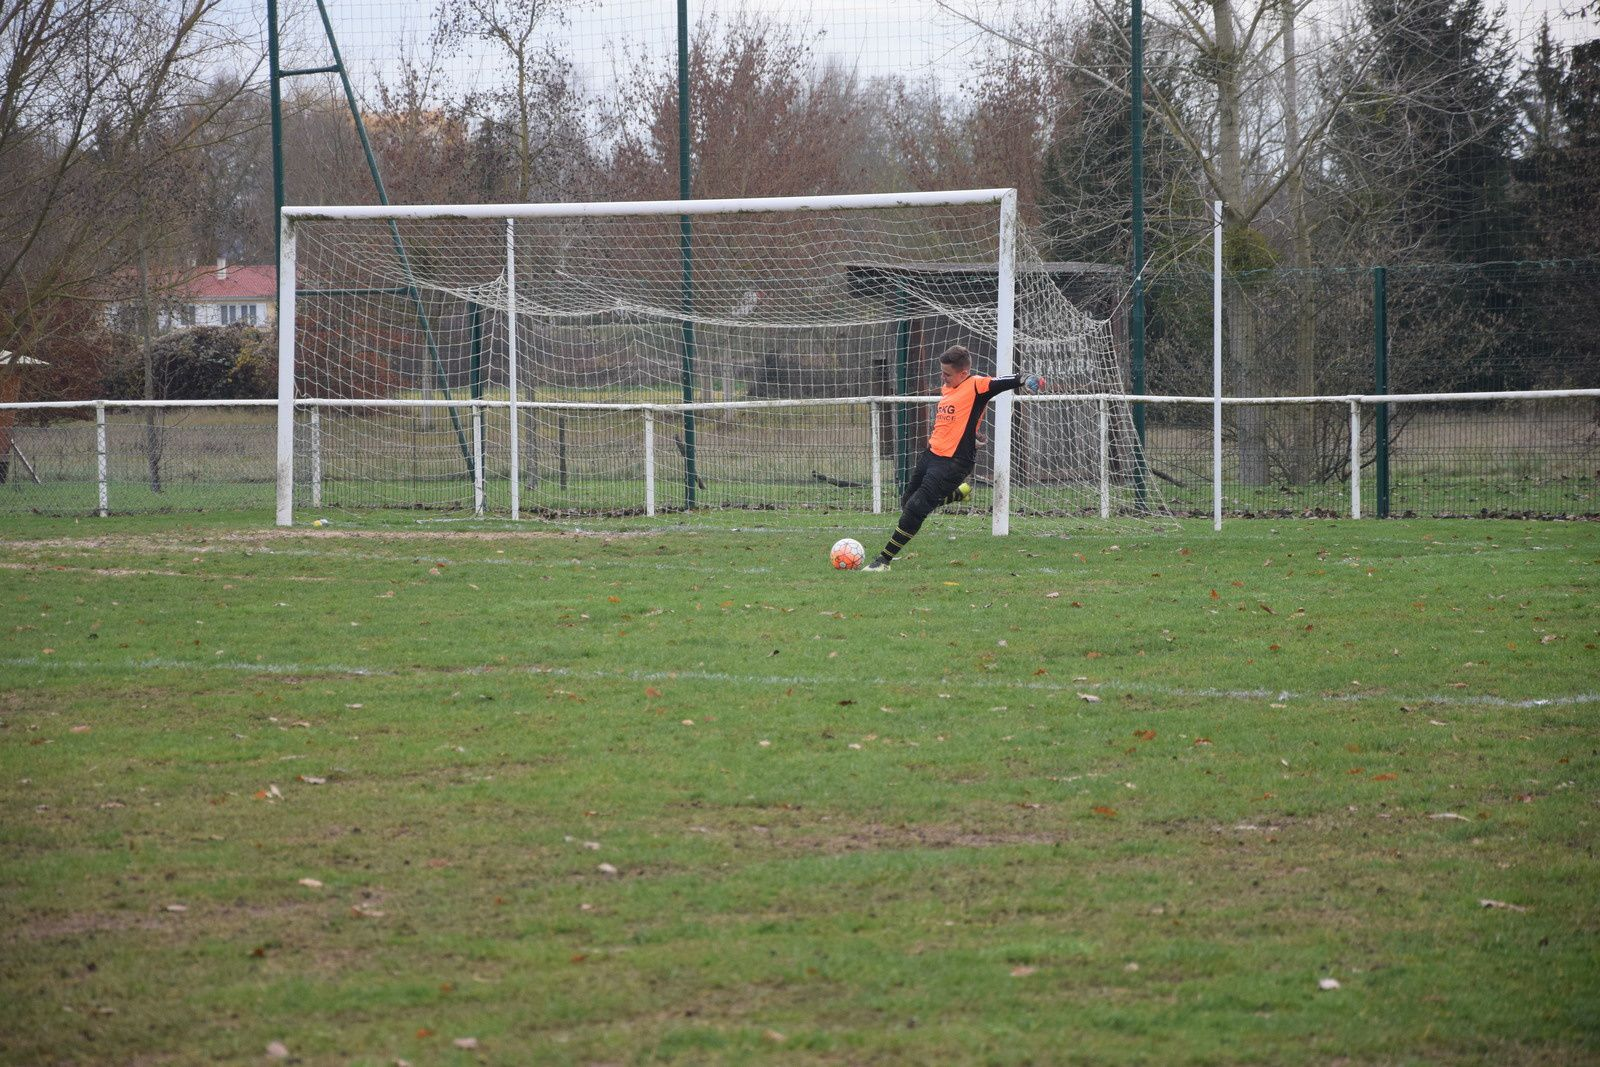 Photos Reportage d'Esther : Section Sportive Foot Foicy 05 dec 18